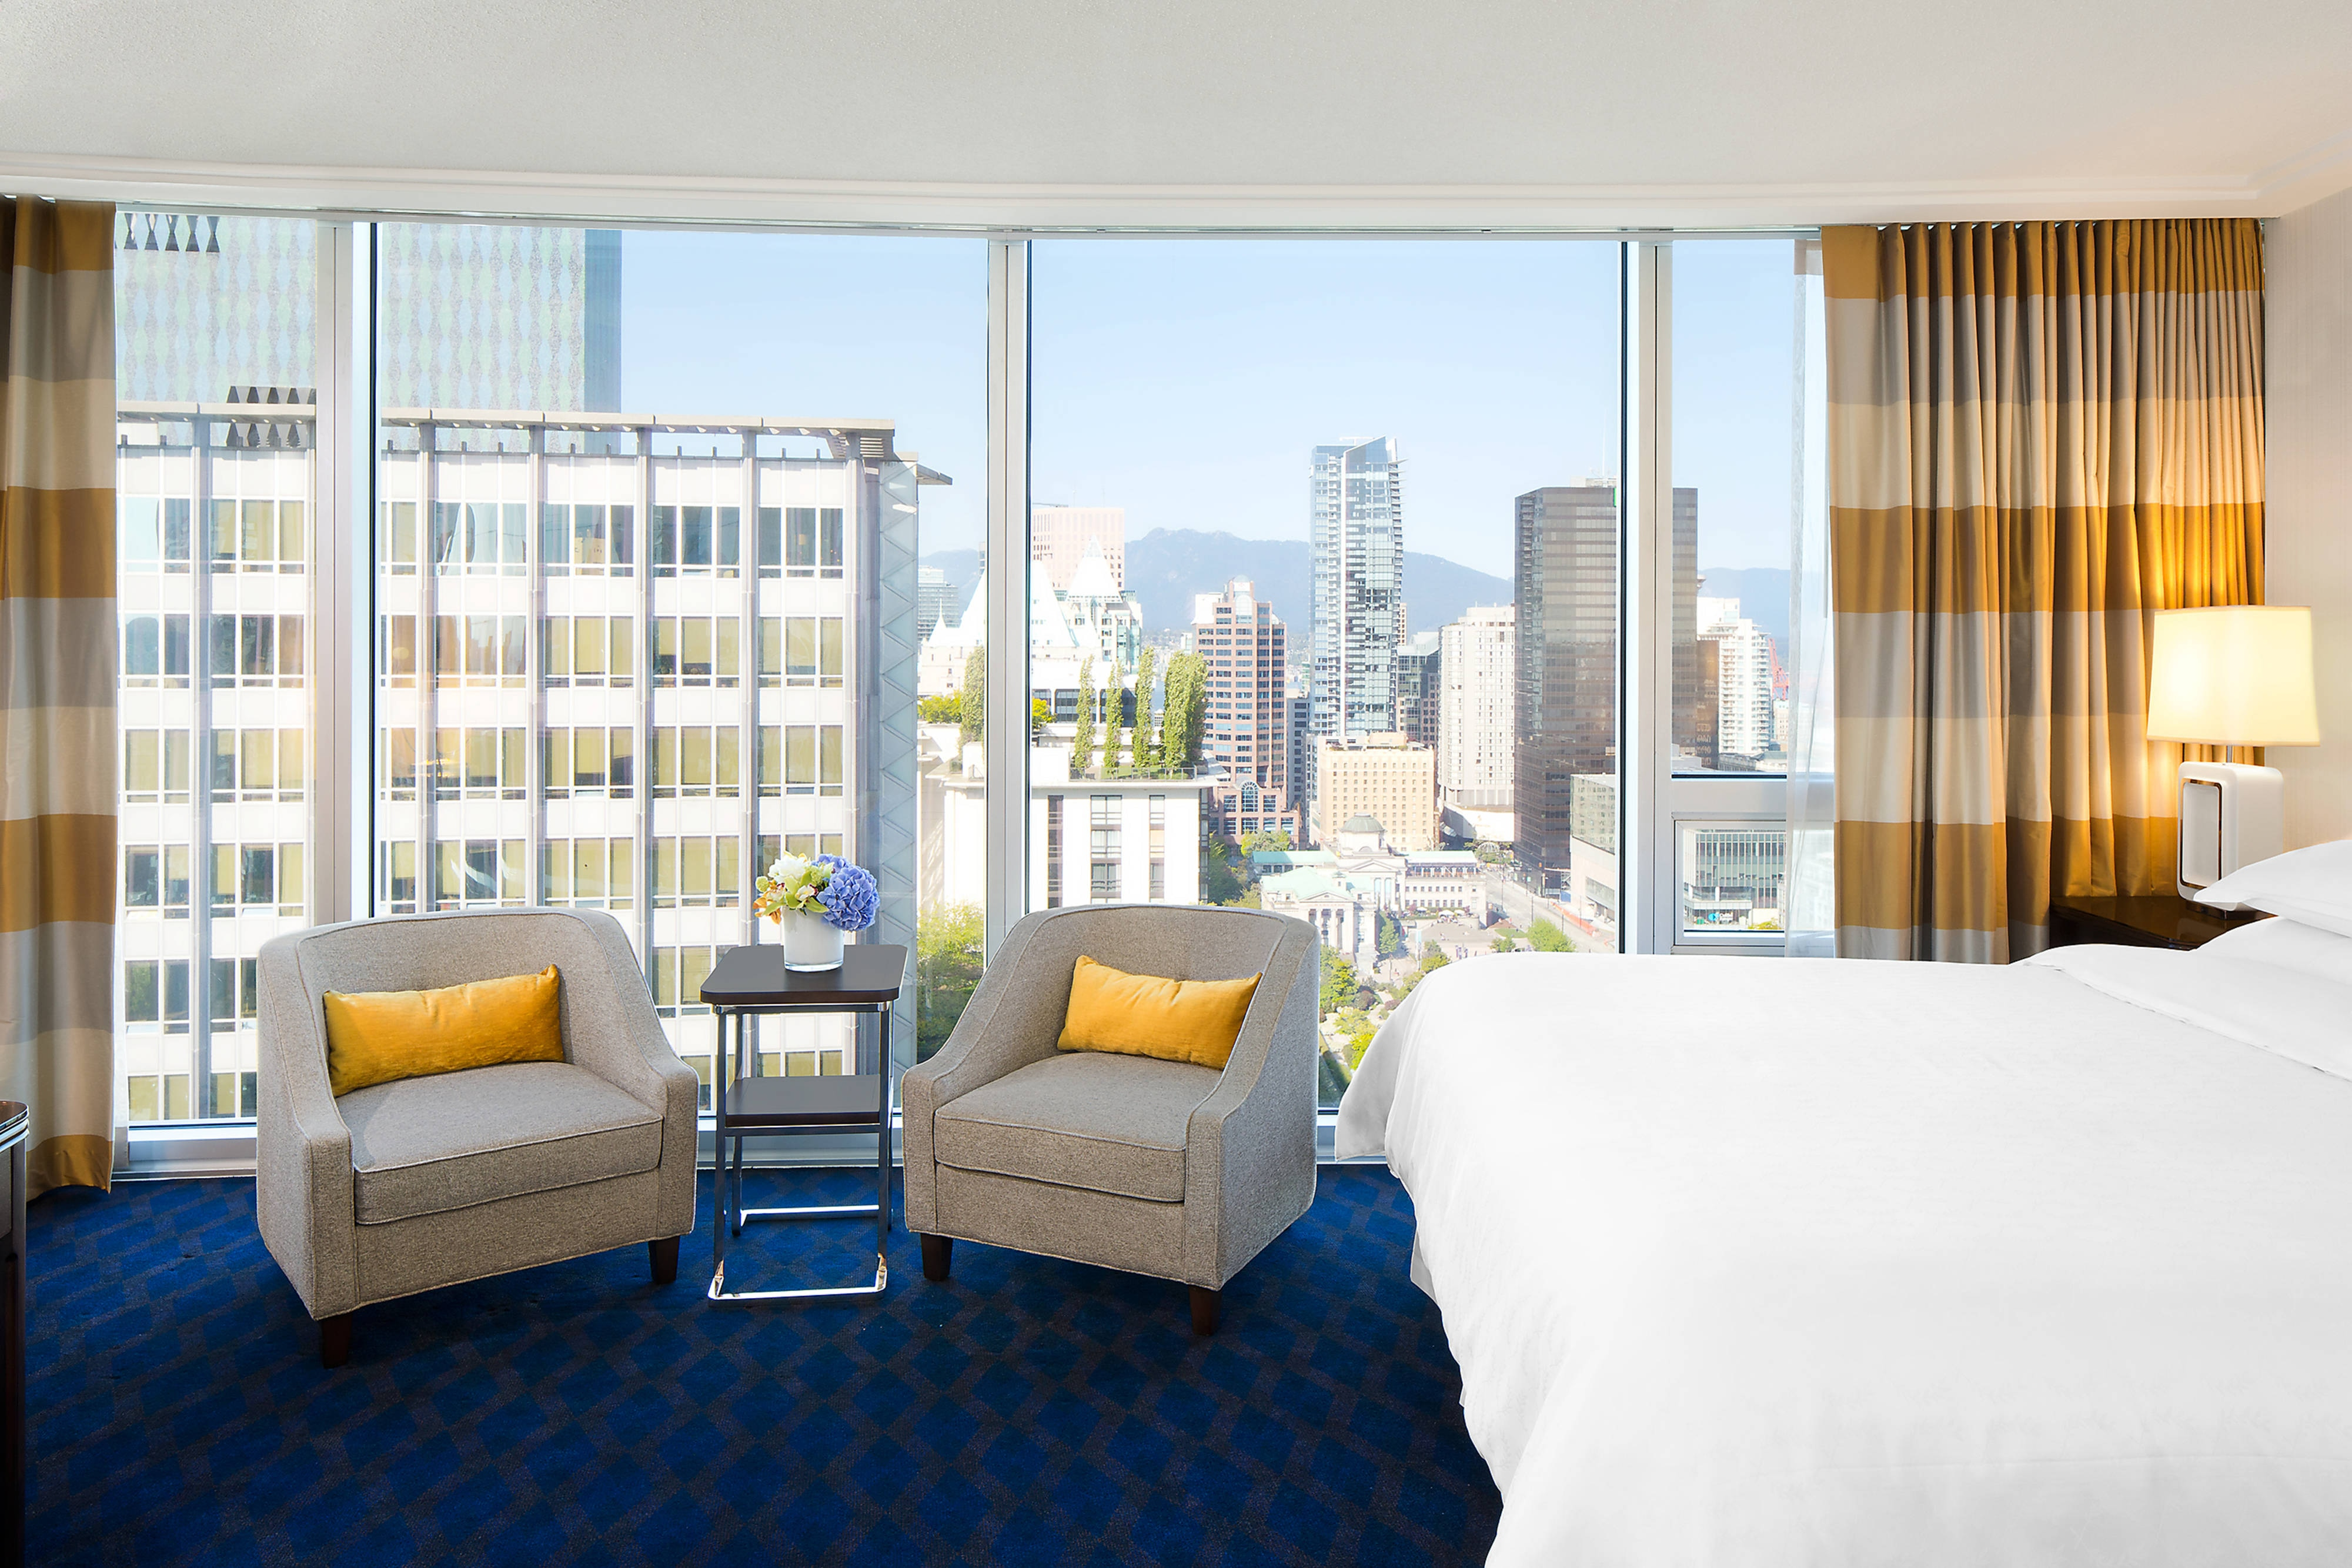 Book A Stay In Our Upscale Hotel Rooms In Vancouver, BC